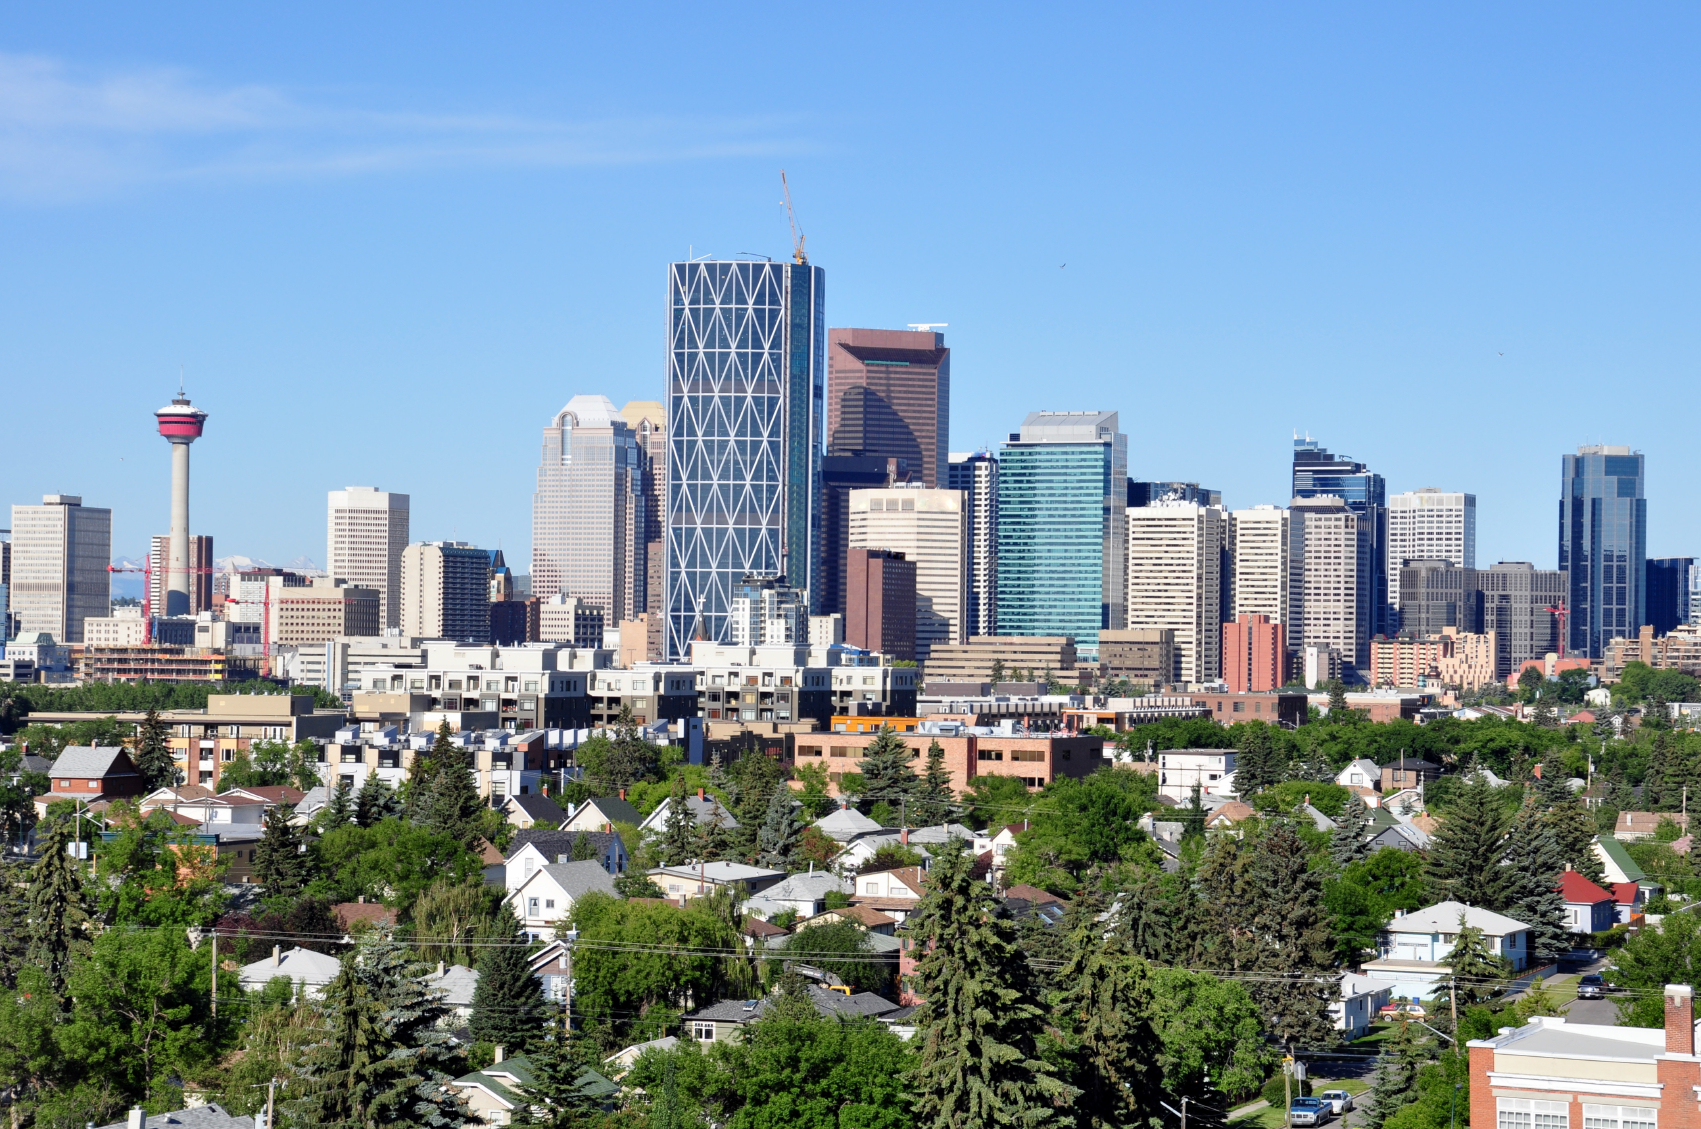 Montreal Calgary And Vancouver At T Provides Local Account Management Design Operational Support To Both Canadian Headquartered Organizations As